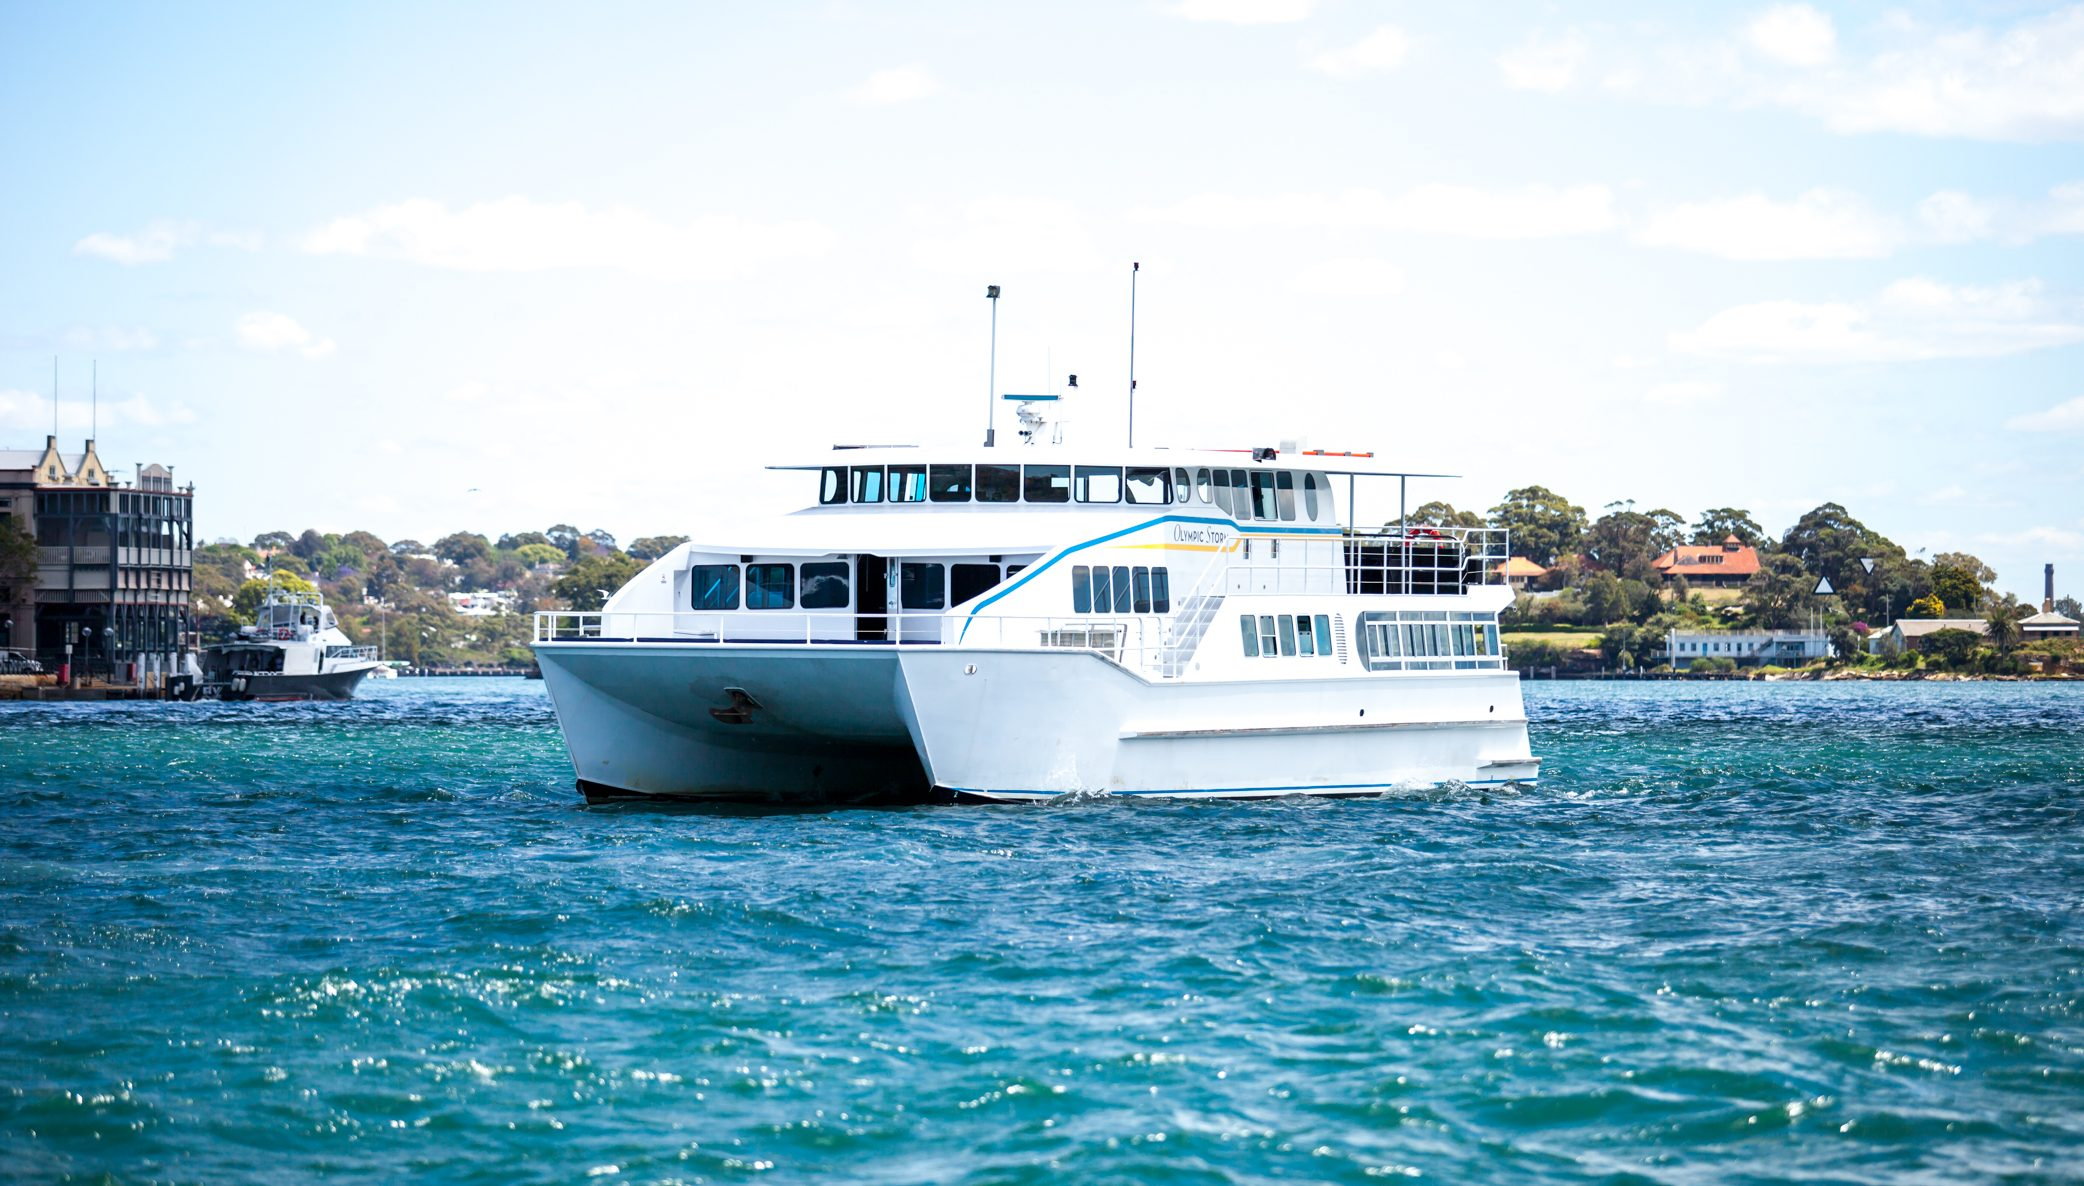 Eclipse - Multi-level catamaran experience that will leave a lasting impression on your guests.